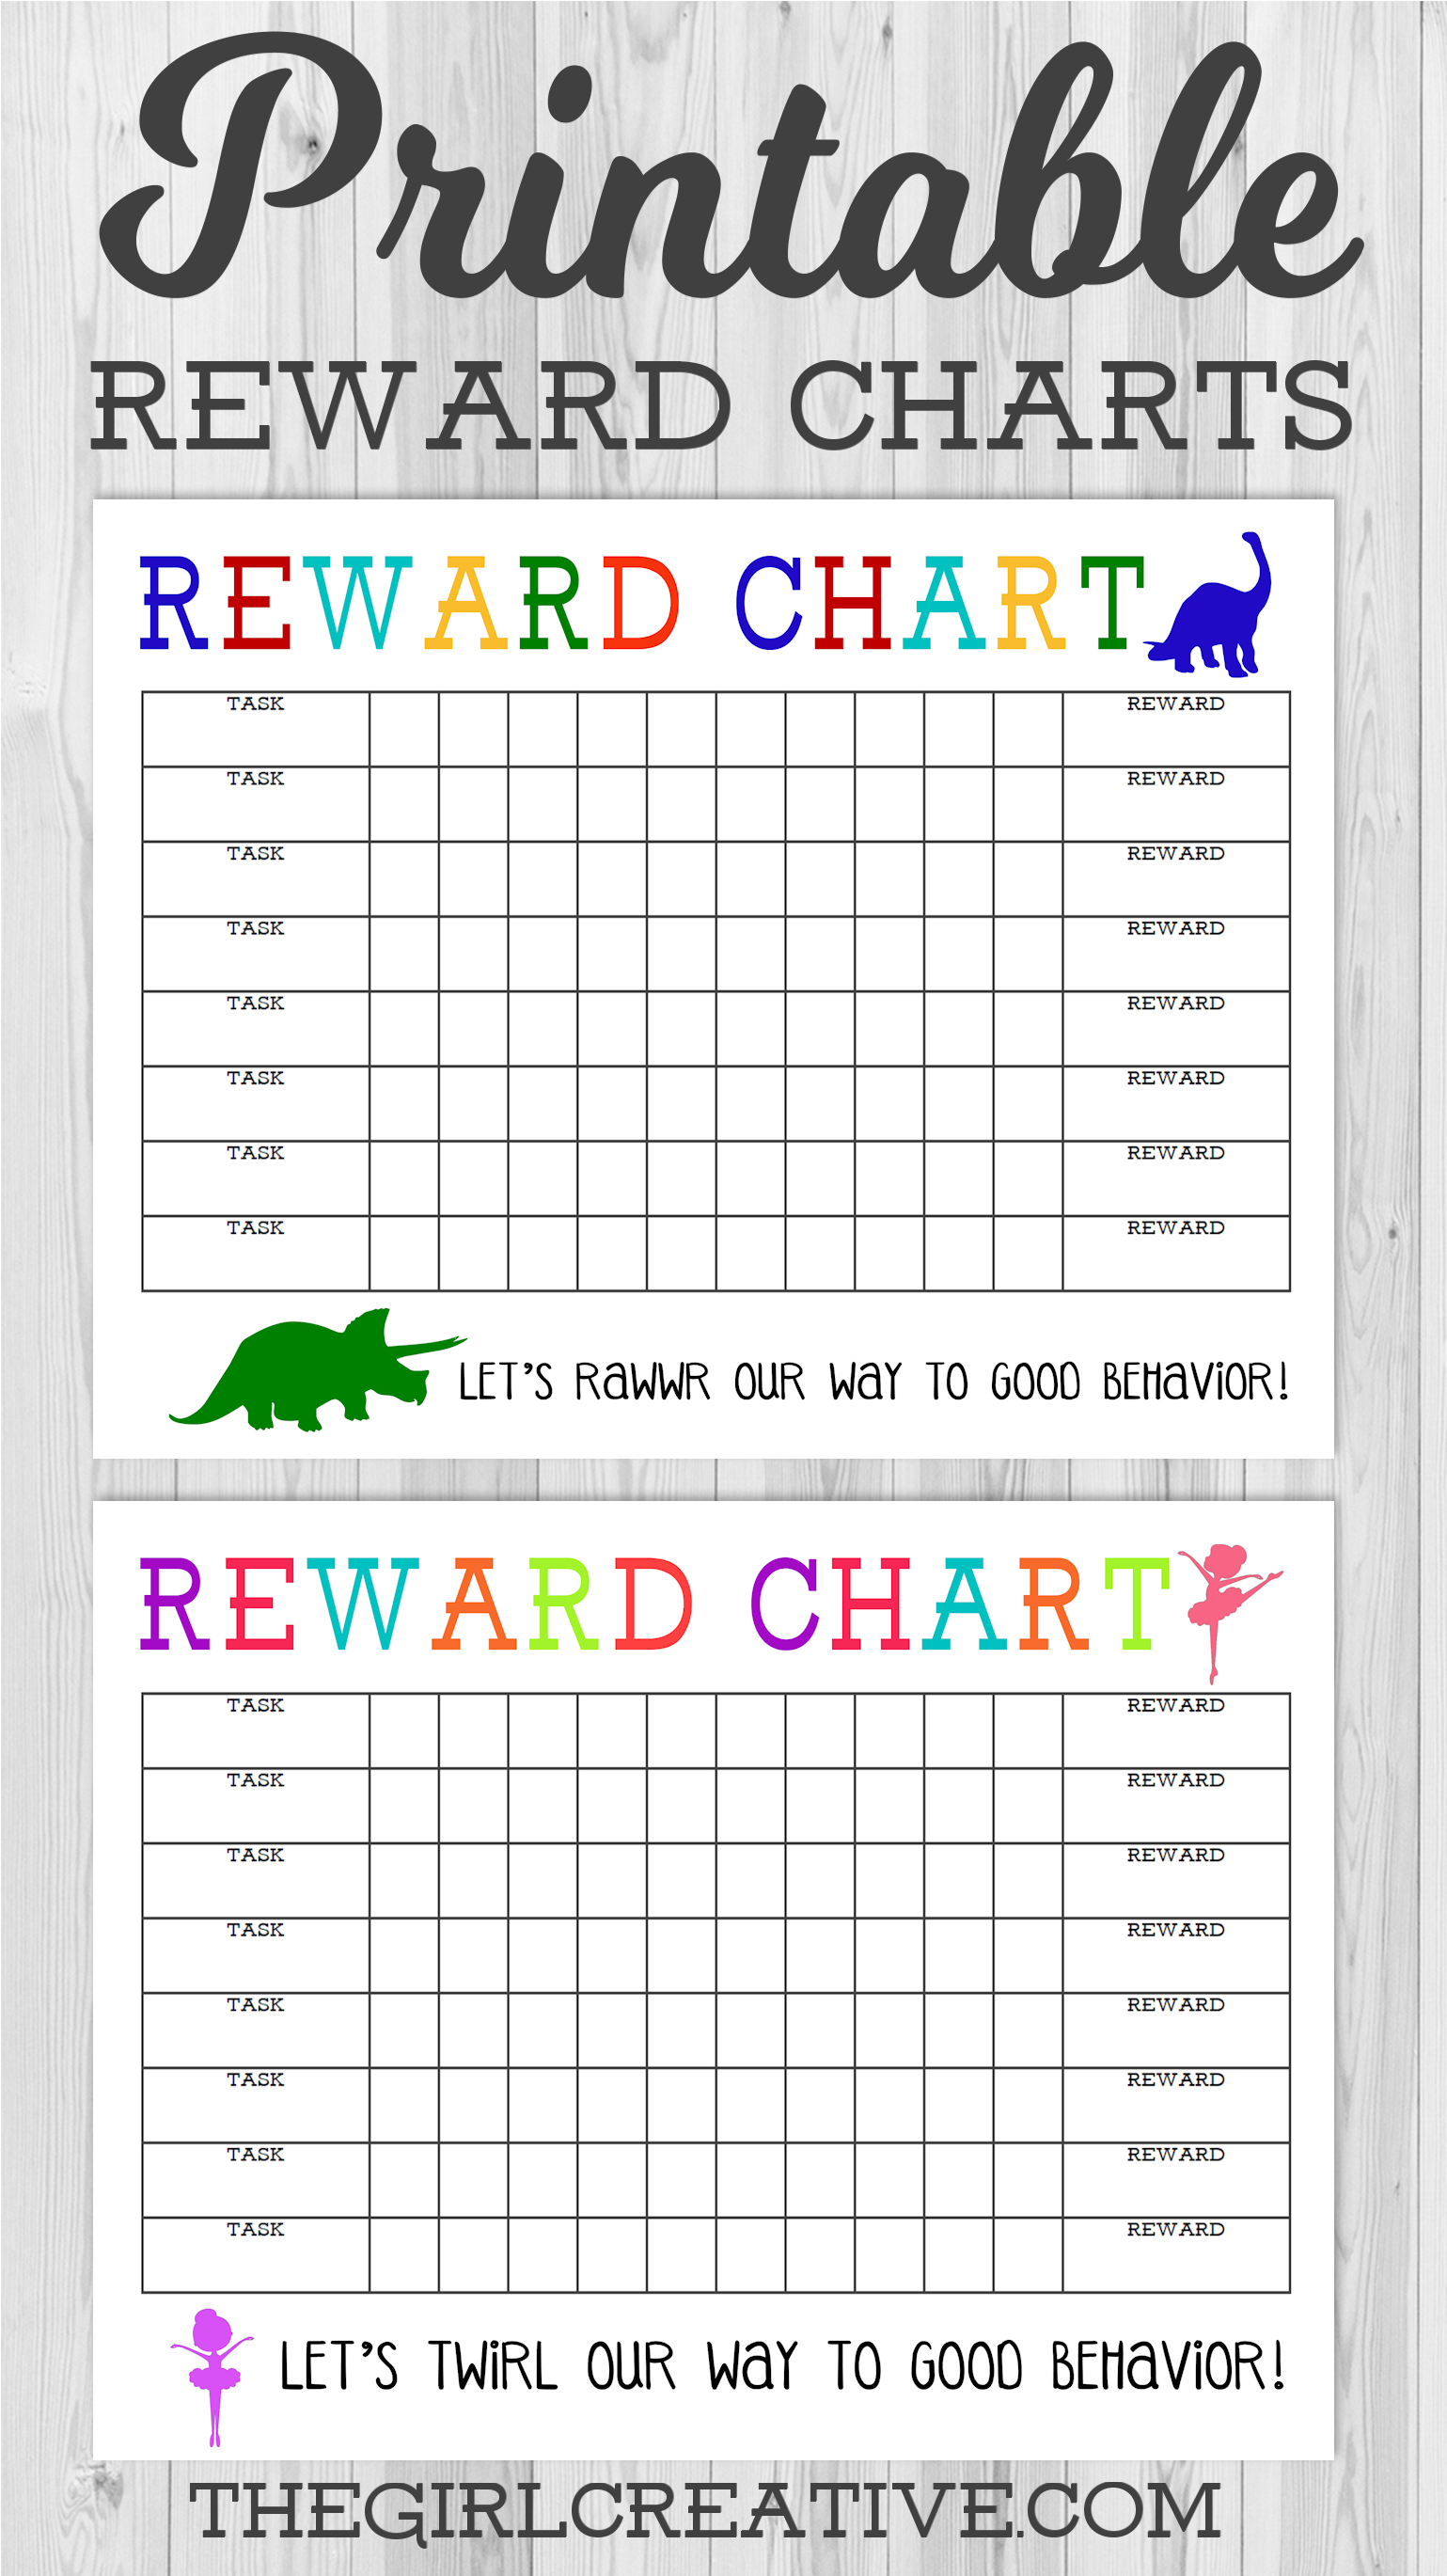 Printable Reward Chart | Share Today's Craft And Diy Ideas - Free Printable Incentive Charts For Students